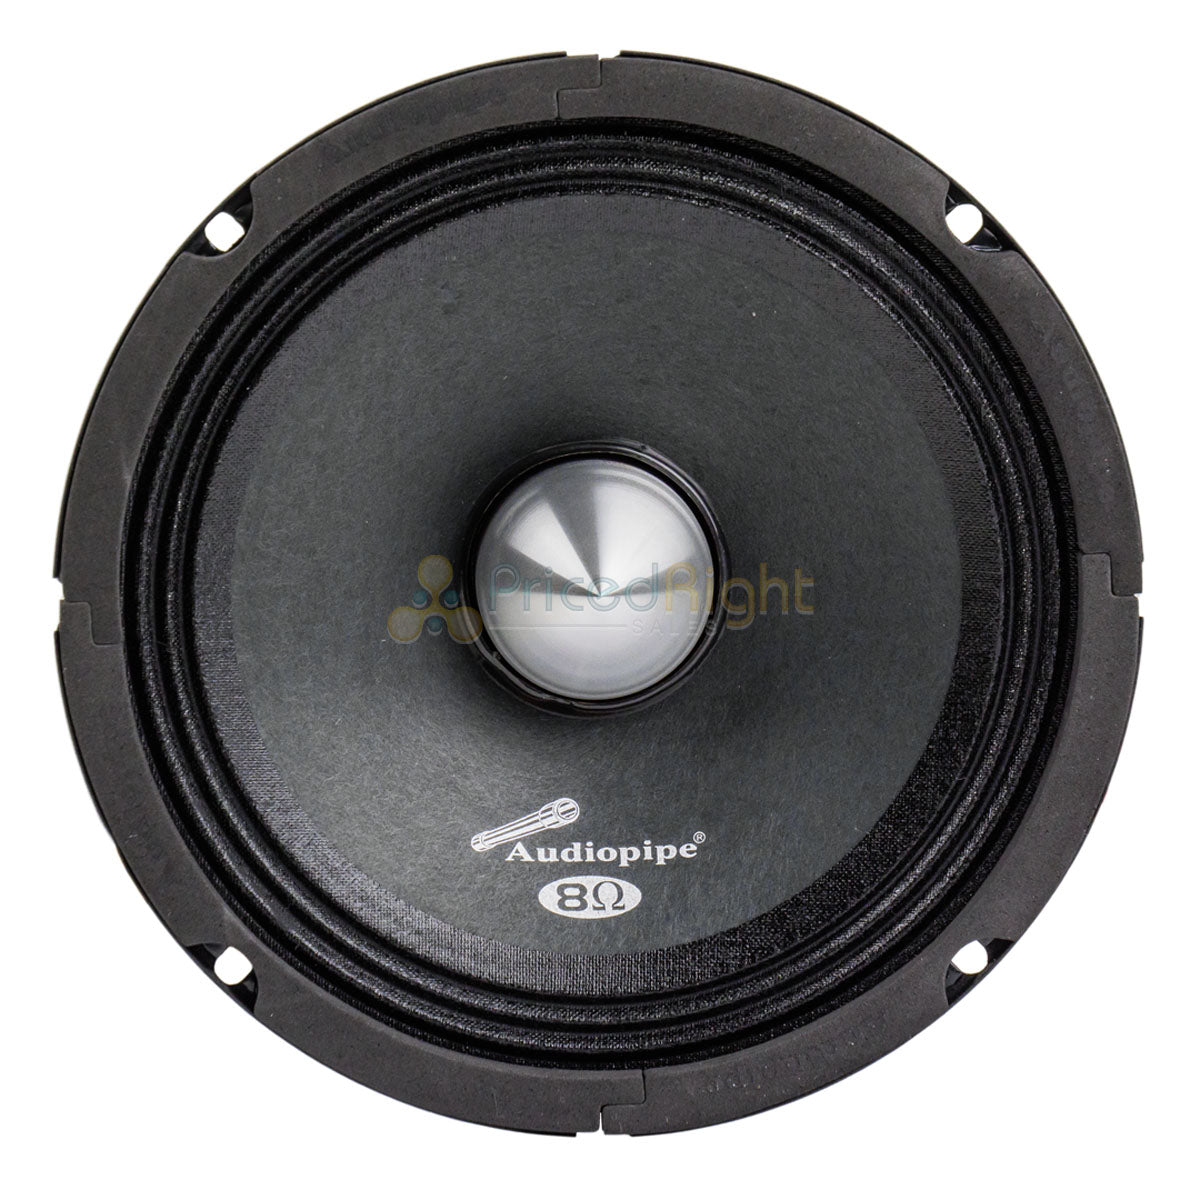 "2 Audiopipe APMB-611DR 6.5"" 250W Low Mid Frequency Loudspeakers Neodynium Magnet"